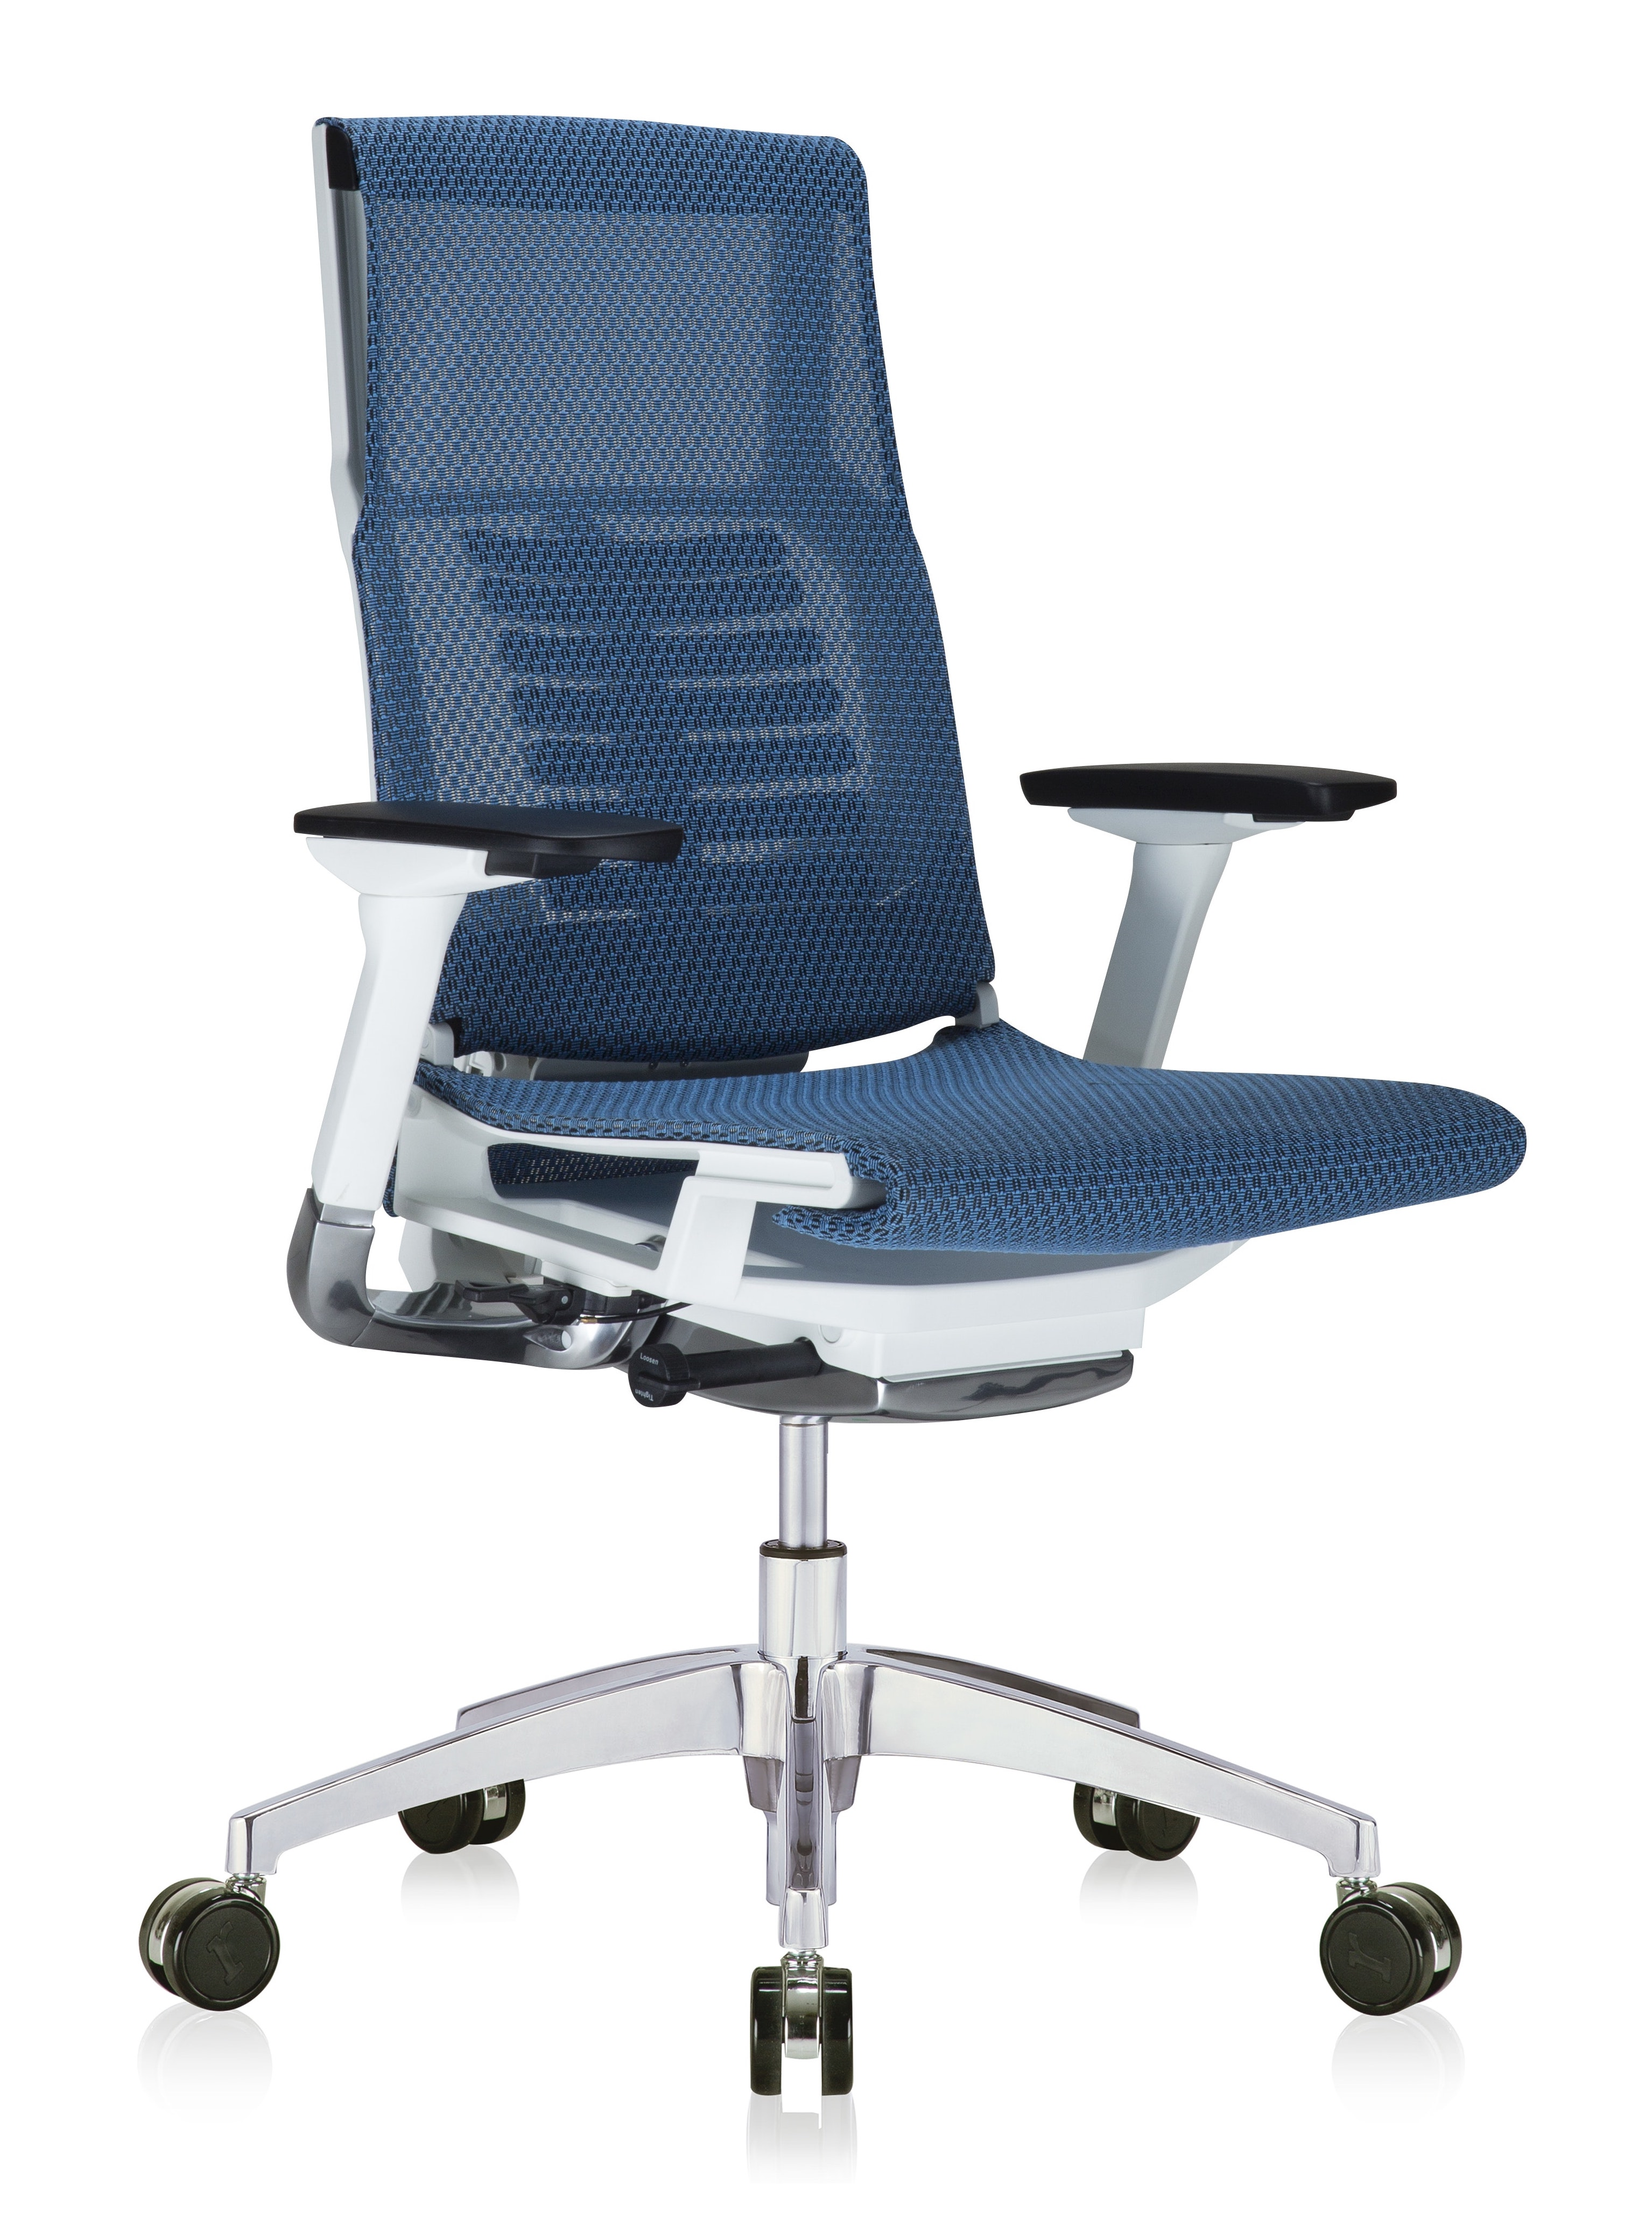 powerfit white frame office chair with blue mesh seat and mesh back